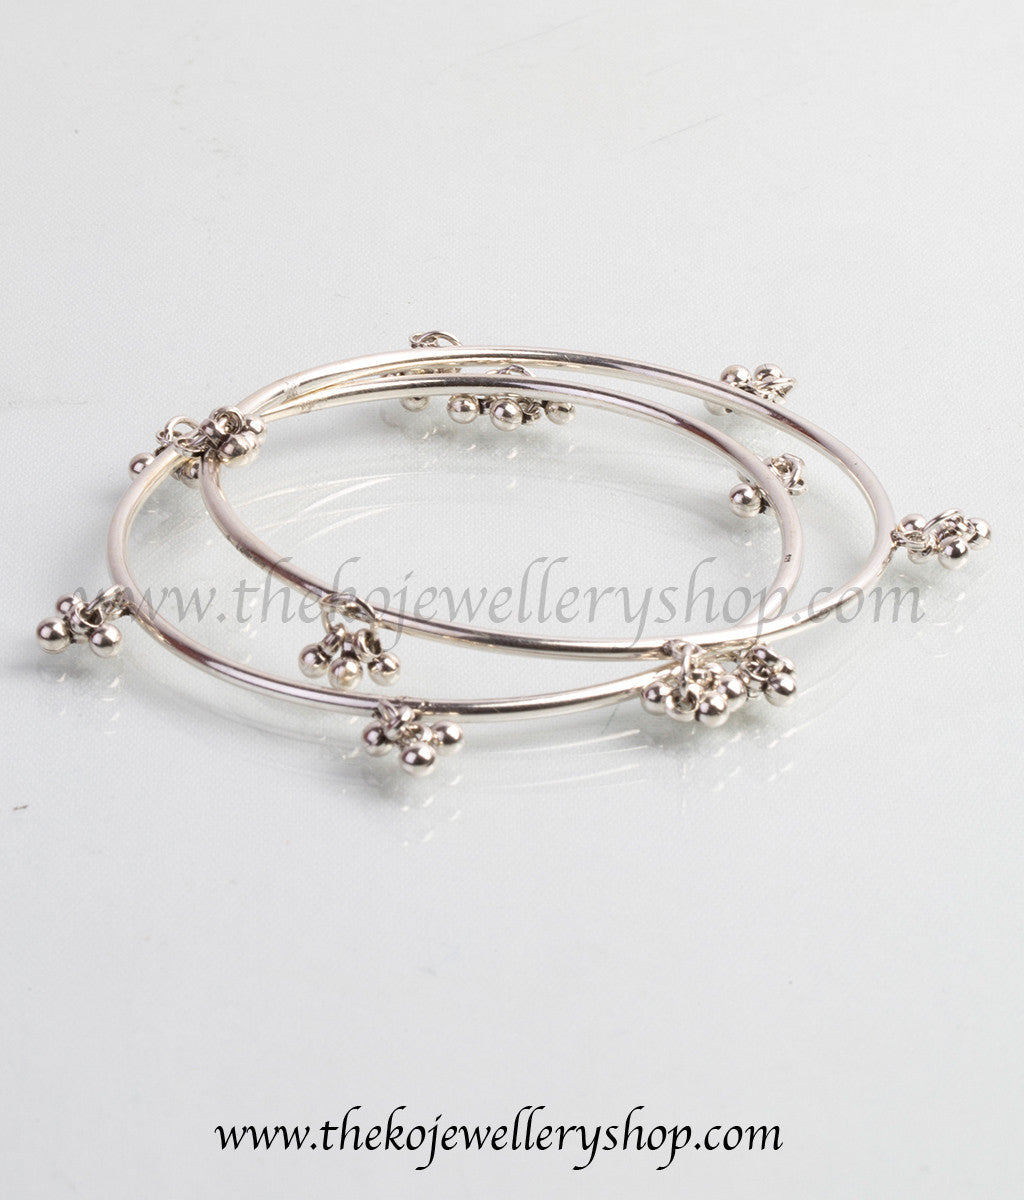 slave width jewellery silver bangles bangle sterling plain